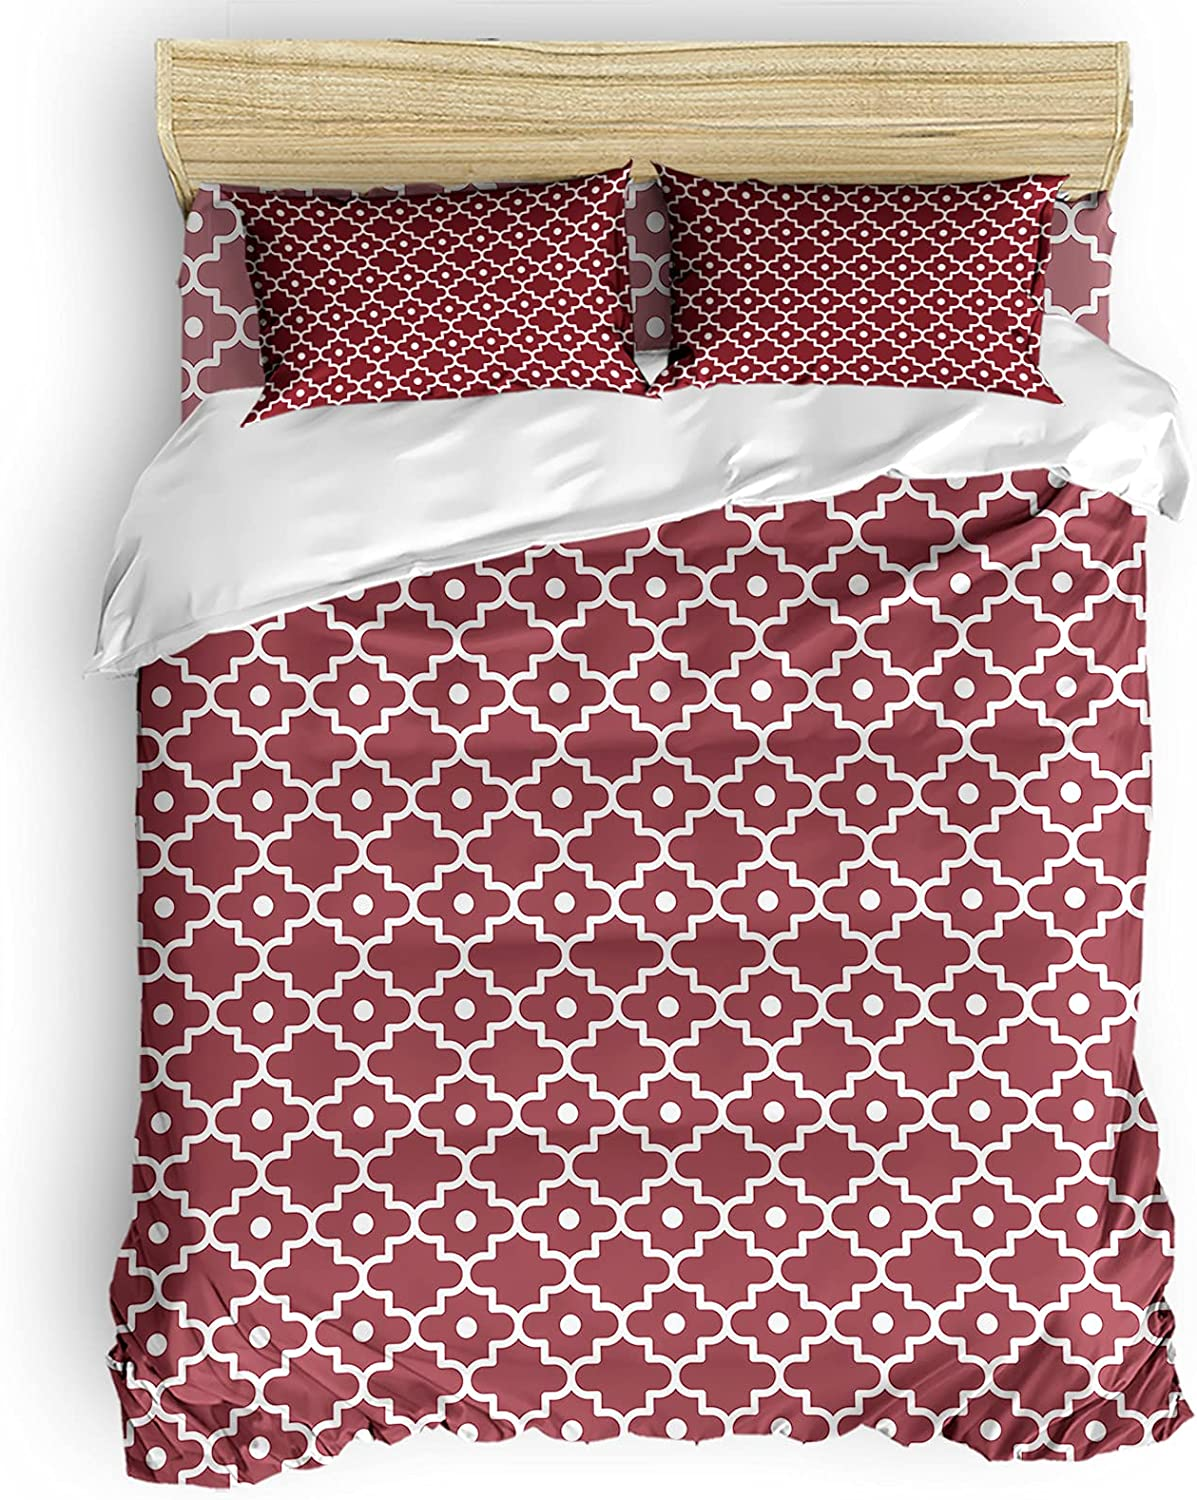 Big buy store Geometry Morocco Houston Mall Manufacturer direct delivery Pattern Piece 4 Cover R Duvet Set